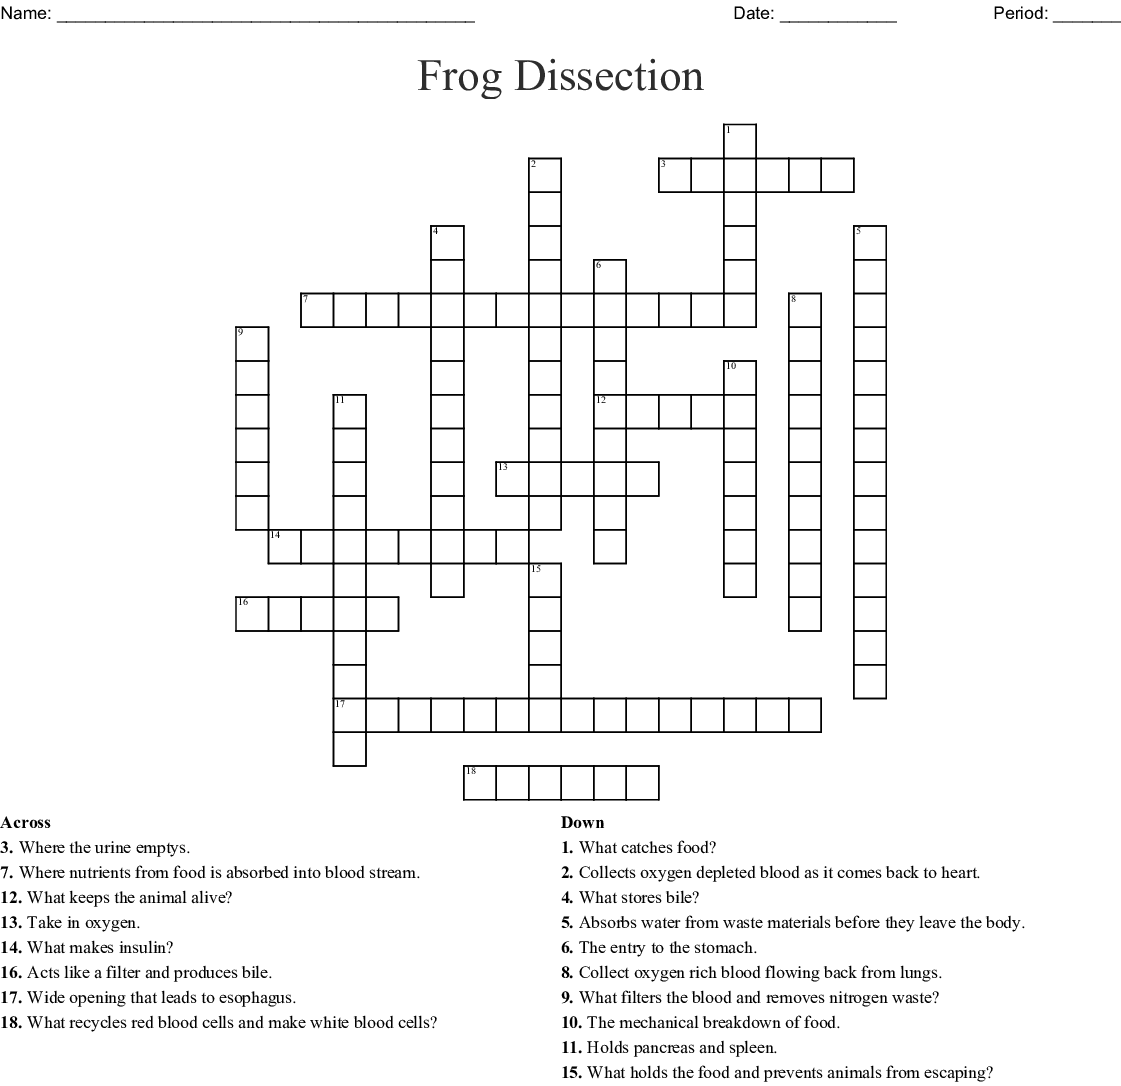 Frog Dissection   BIOLOGY JUNCTION likewise Frog Dissection Coloring Answer Key   mountainstyle co likewise Frog dissection worksheet 2 further Frog Label Frog Dissection Worksheet – bossmumma club besides  further Frog Dissection Pre lab   FBISD C uses Pages 1   6   Text Version further Frog Dissection Lab Answer Key  Frog Dissection Worksheet Answer Key further  furthermore Frog Insides Diagram Beautiful Fetal Pig Labeled Diagram Best Frog further Frog Dissection Pre Lab Worksheet Answer Key Elegant Sheep in also Frog Dissection Crossword   WordMint in addition Frog Dissection Worksheet Answer Key Anatomy the Consution likewise Frog Review Labeling Key together with Frog Dissection – Student Guide further  also Frog Dissection Coloring Answers   mountainstyle co. on frog dissection worksheet answer key